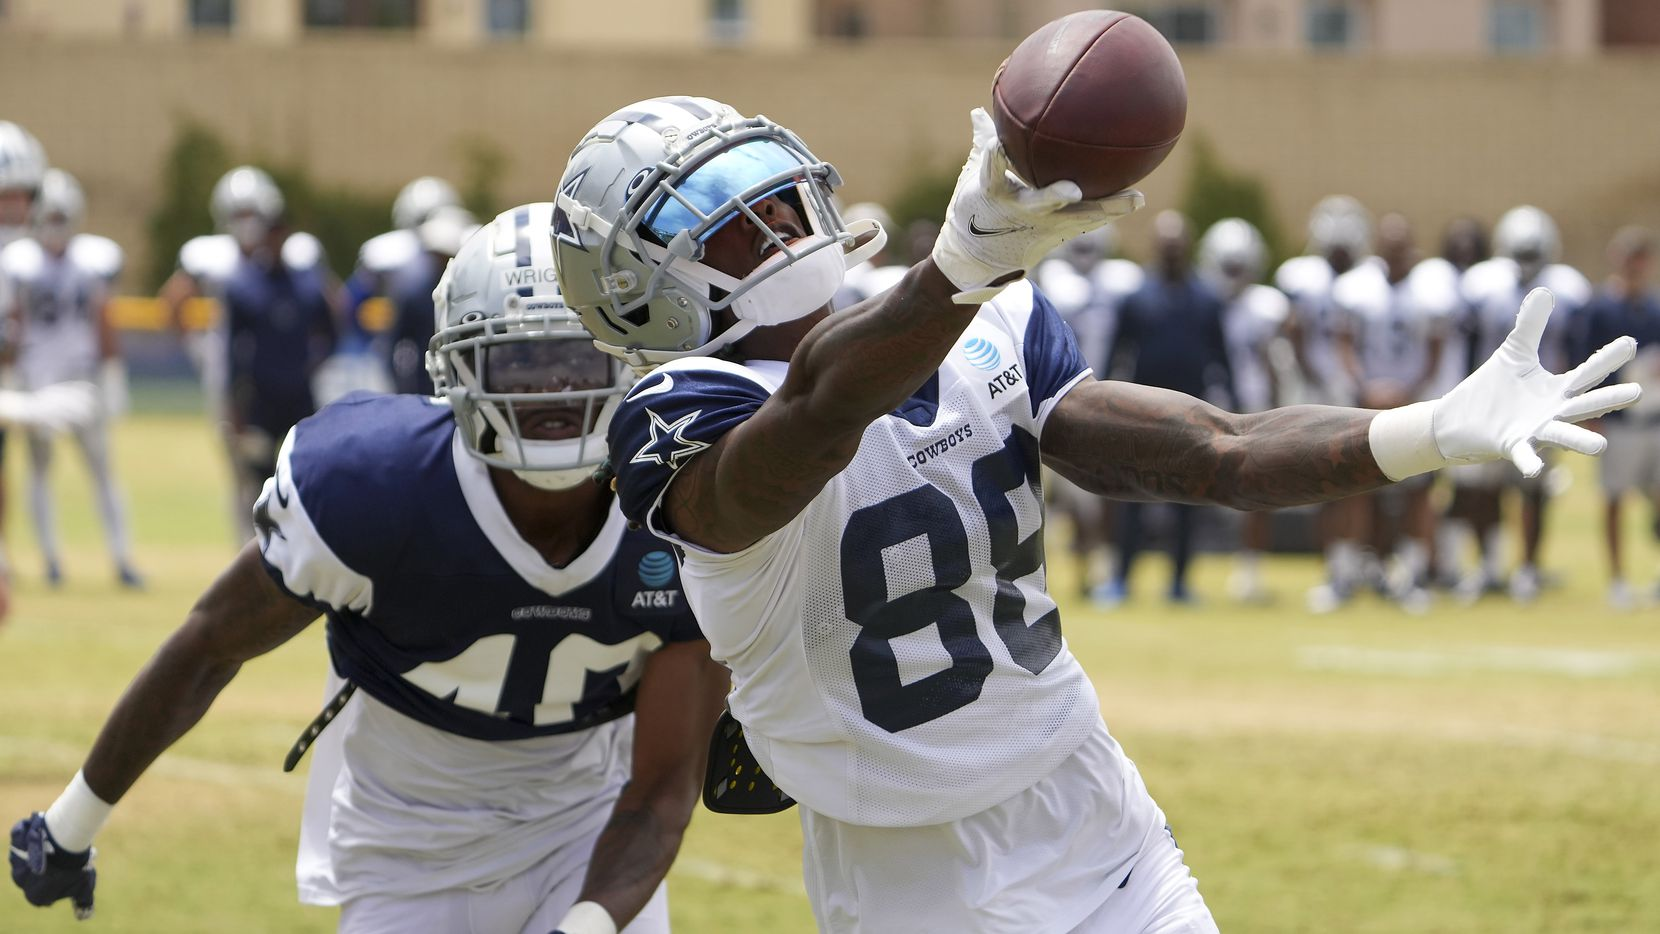 Dallas Cowboys wide receiver CeeDee Lamb (88) makes a catch for a Dallas Cowboys touchdown during a two-minute drill as cornerback Nahshon Wright (40) defends during a practice at training camp on Saturday, July 31, 2021, in Oxnard, Calif.